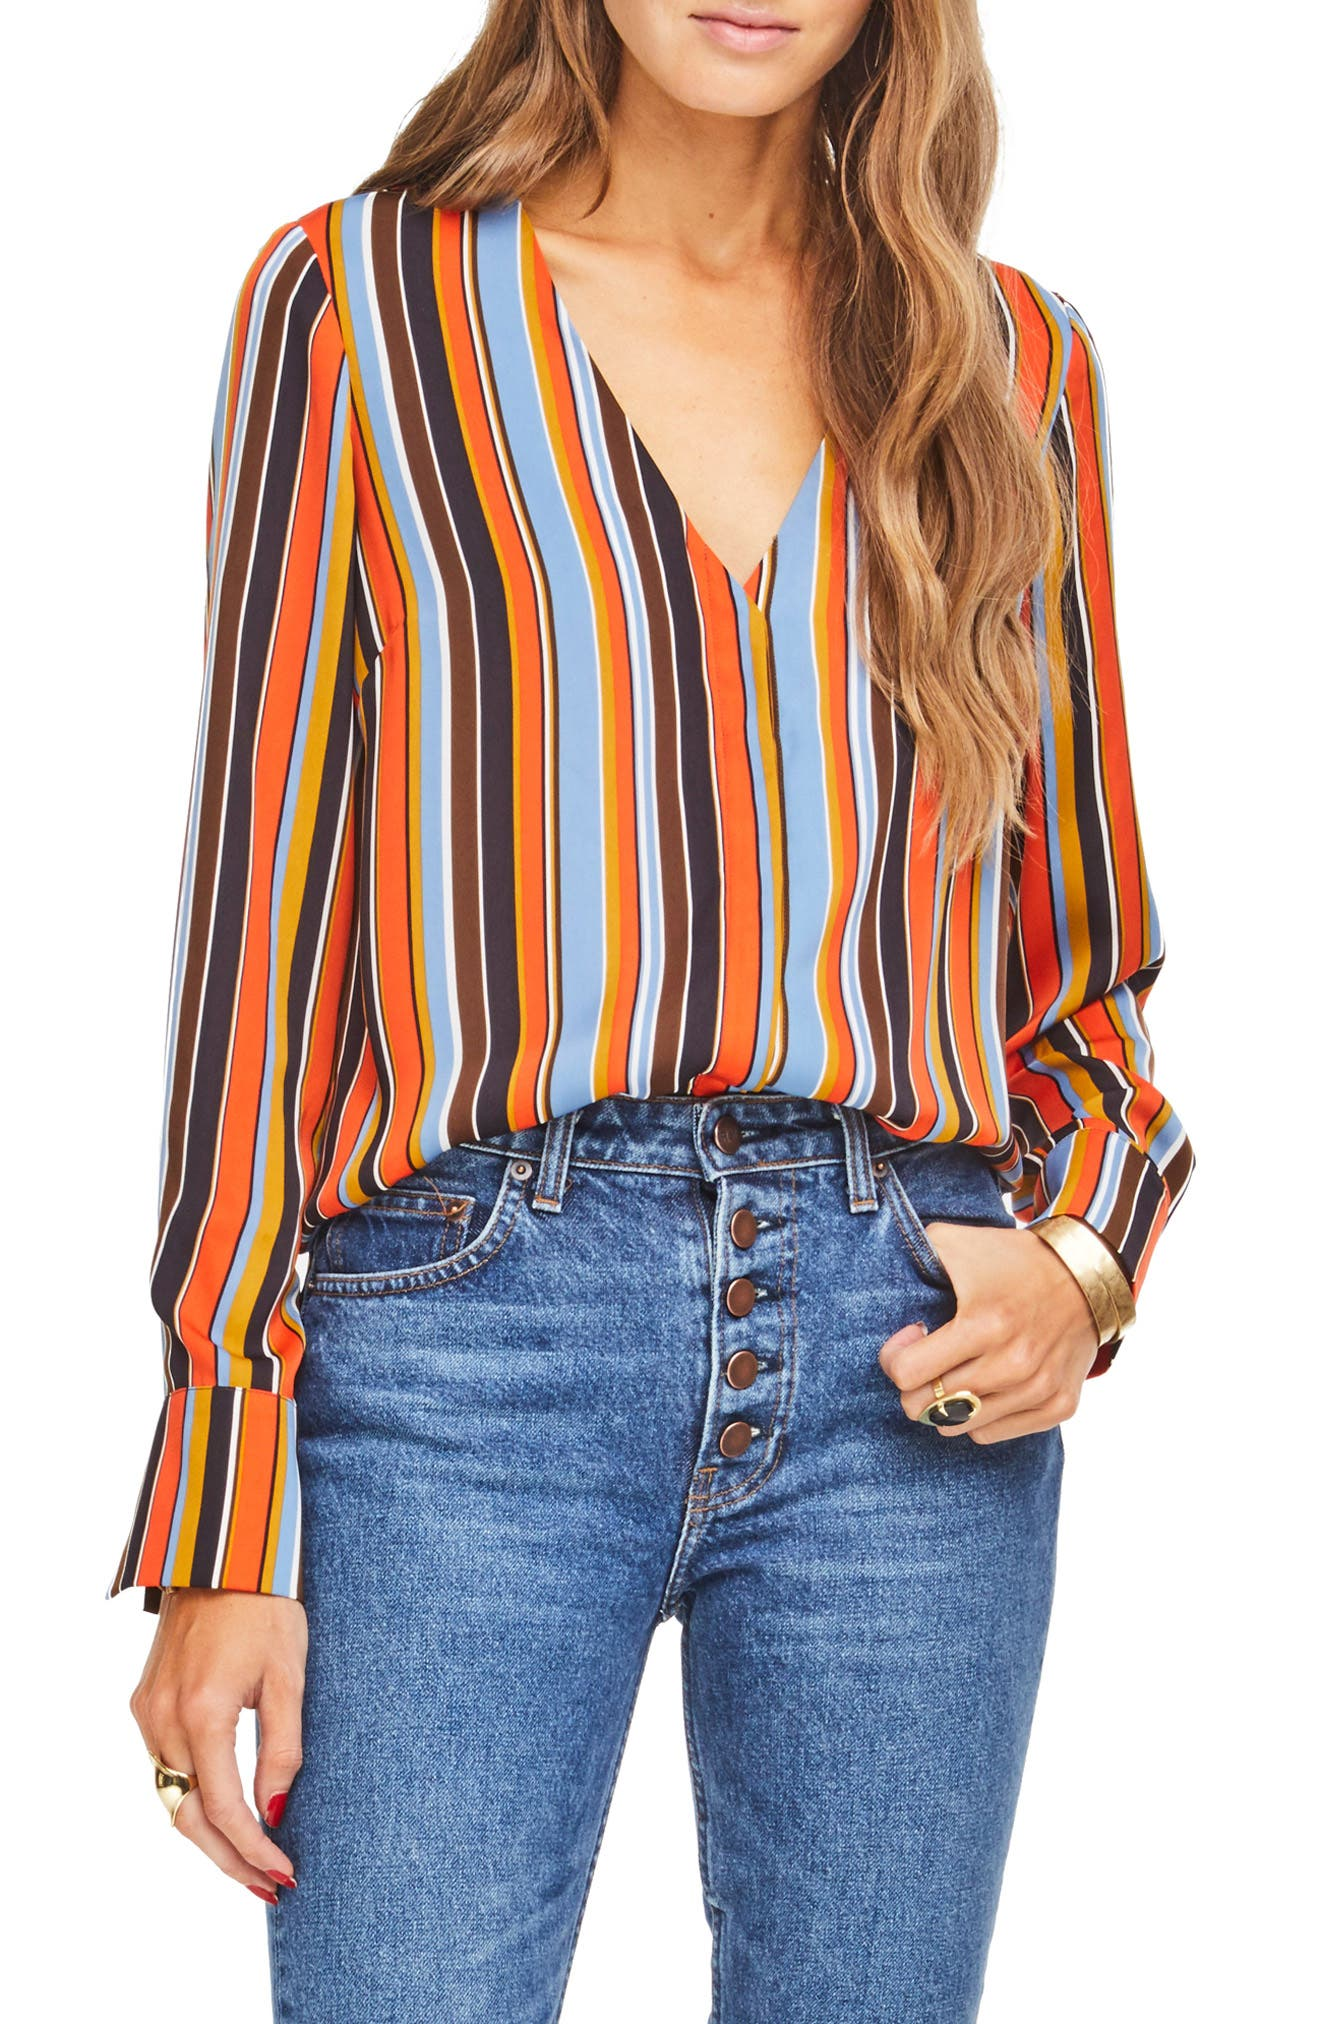 Womens Astr The Label Tops Blouses Tees Nordstrom Kate Embroidery Blouse In Blue Beatrice Clothing